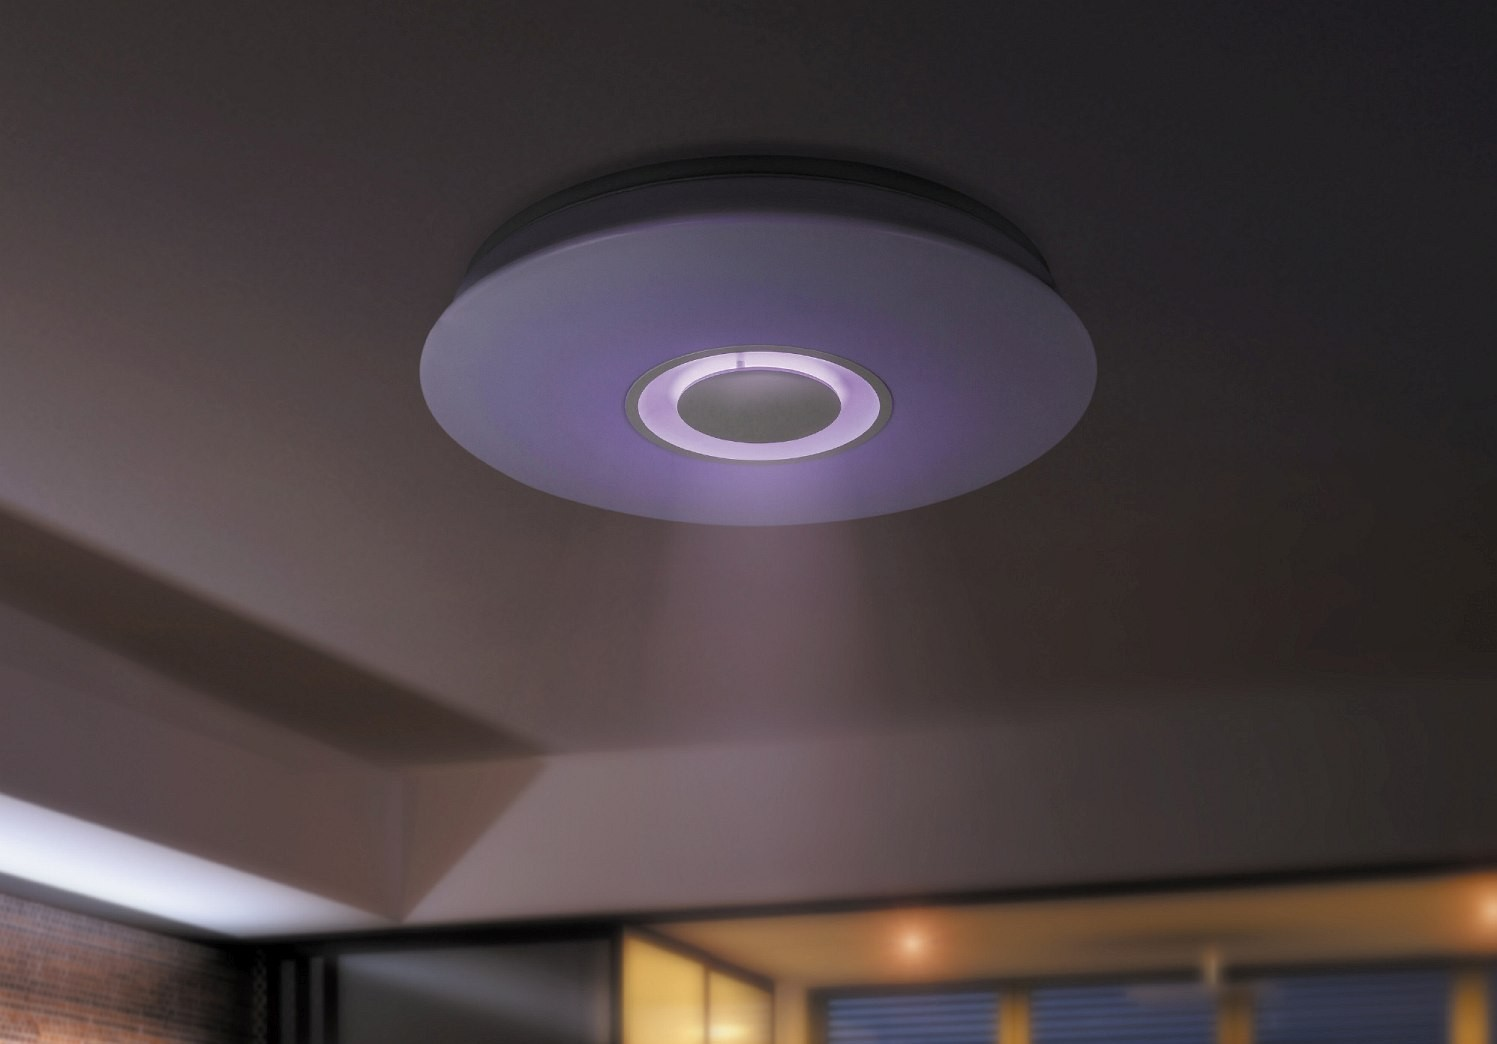 Plafoniere Bluetooth : Plafoniere bluetooth wish app control led music ceiling lights